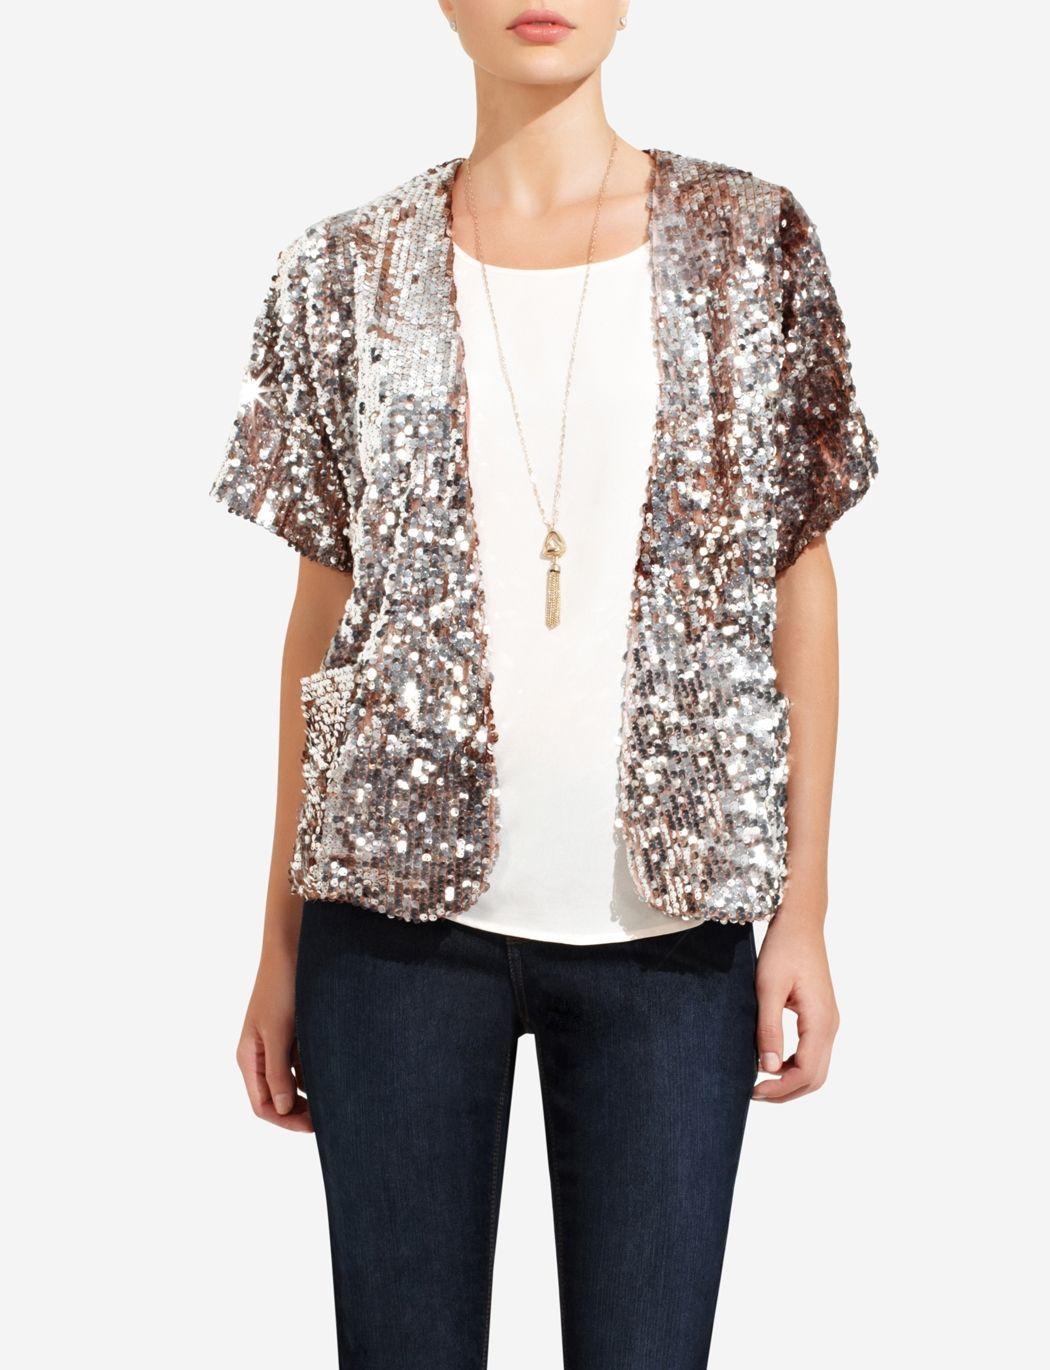 386486fa Silver & Rose Gold Sequin Jacket | THE LIMITED | Looks I Love ...